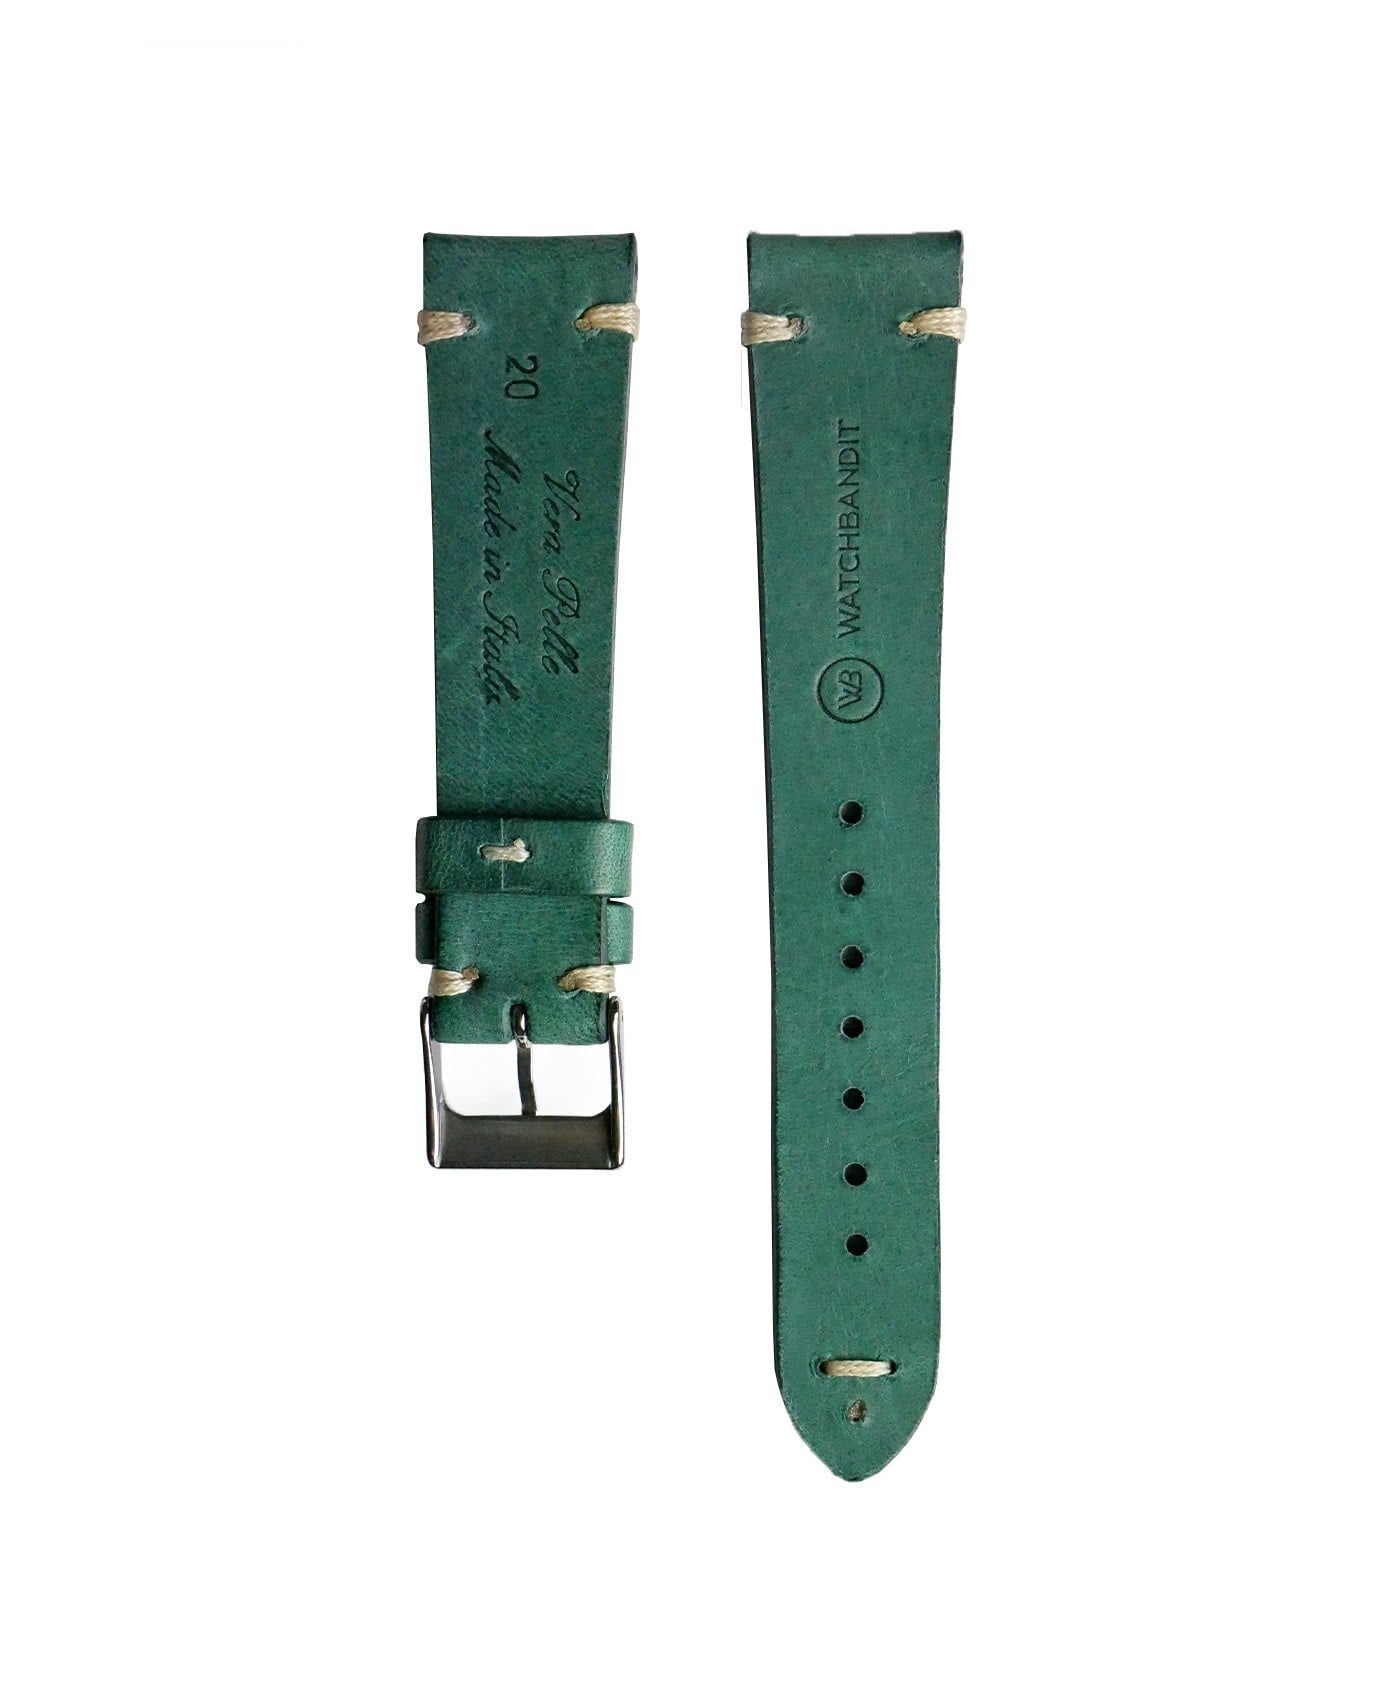 WB original premium vintage leather watch strap petrol green back